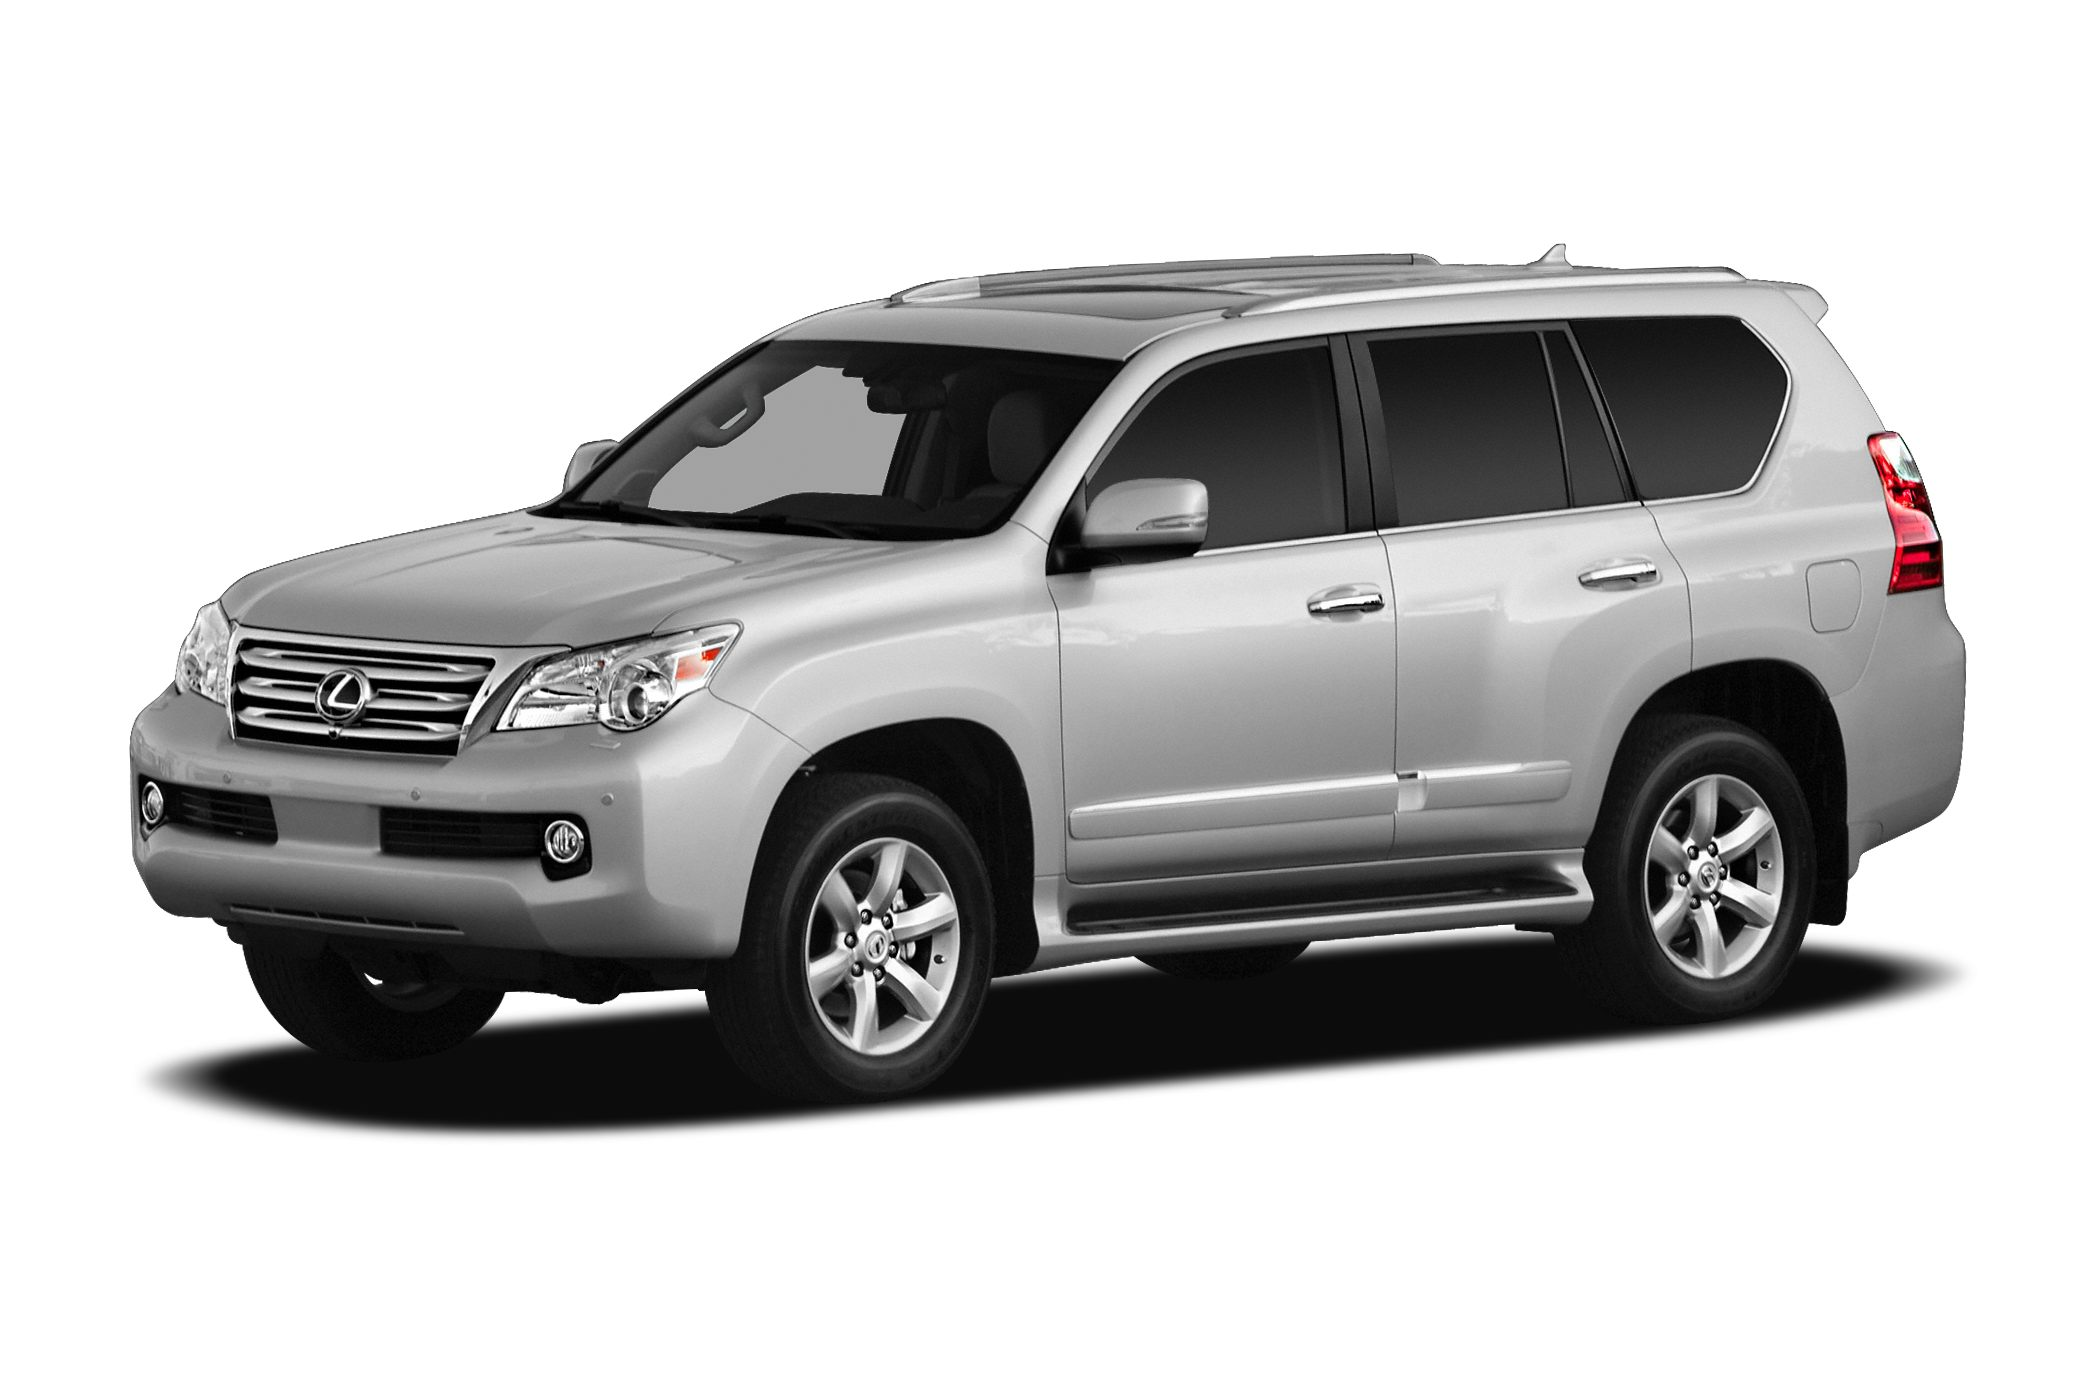 2010 Lexus GX 460  DISCOVERY AUTO CENTER IS PROUD TO OFFER THIS 2010 LEXUS GX460 THIS 2010 LEXUS